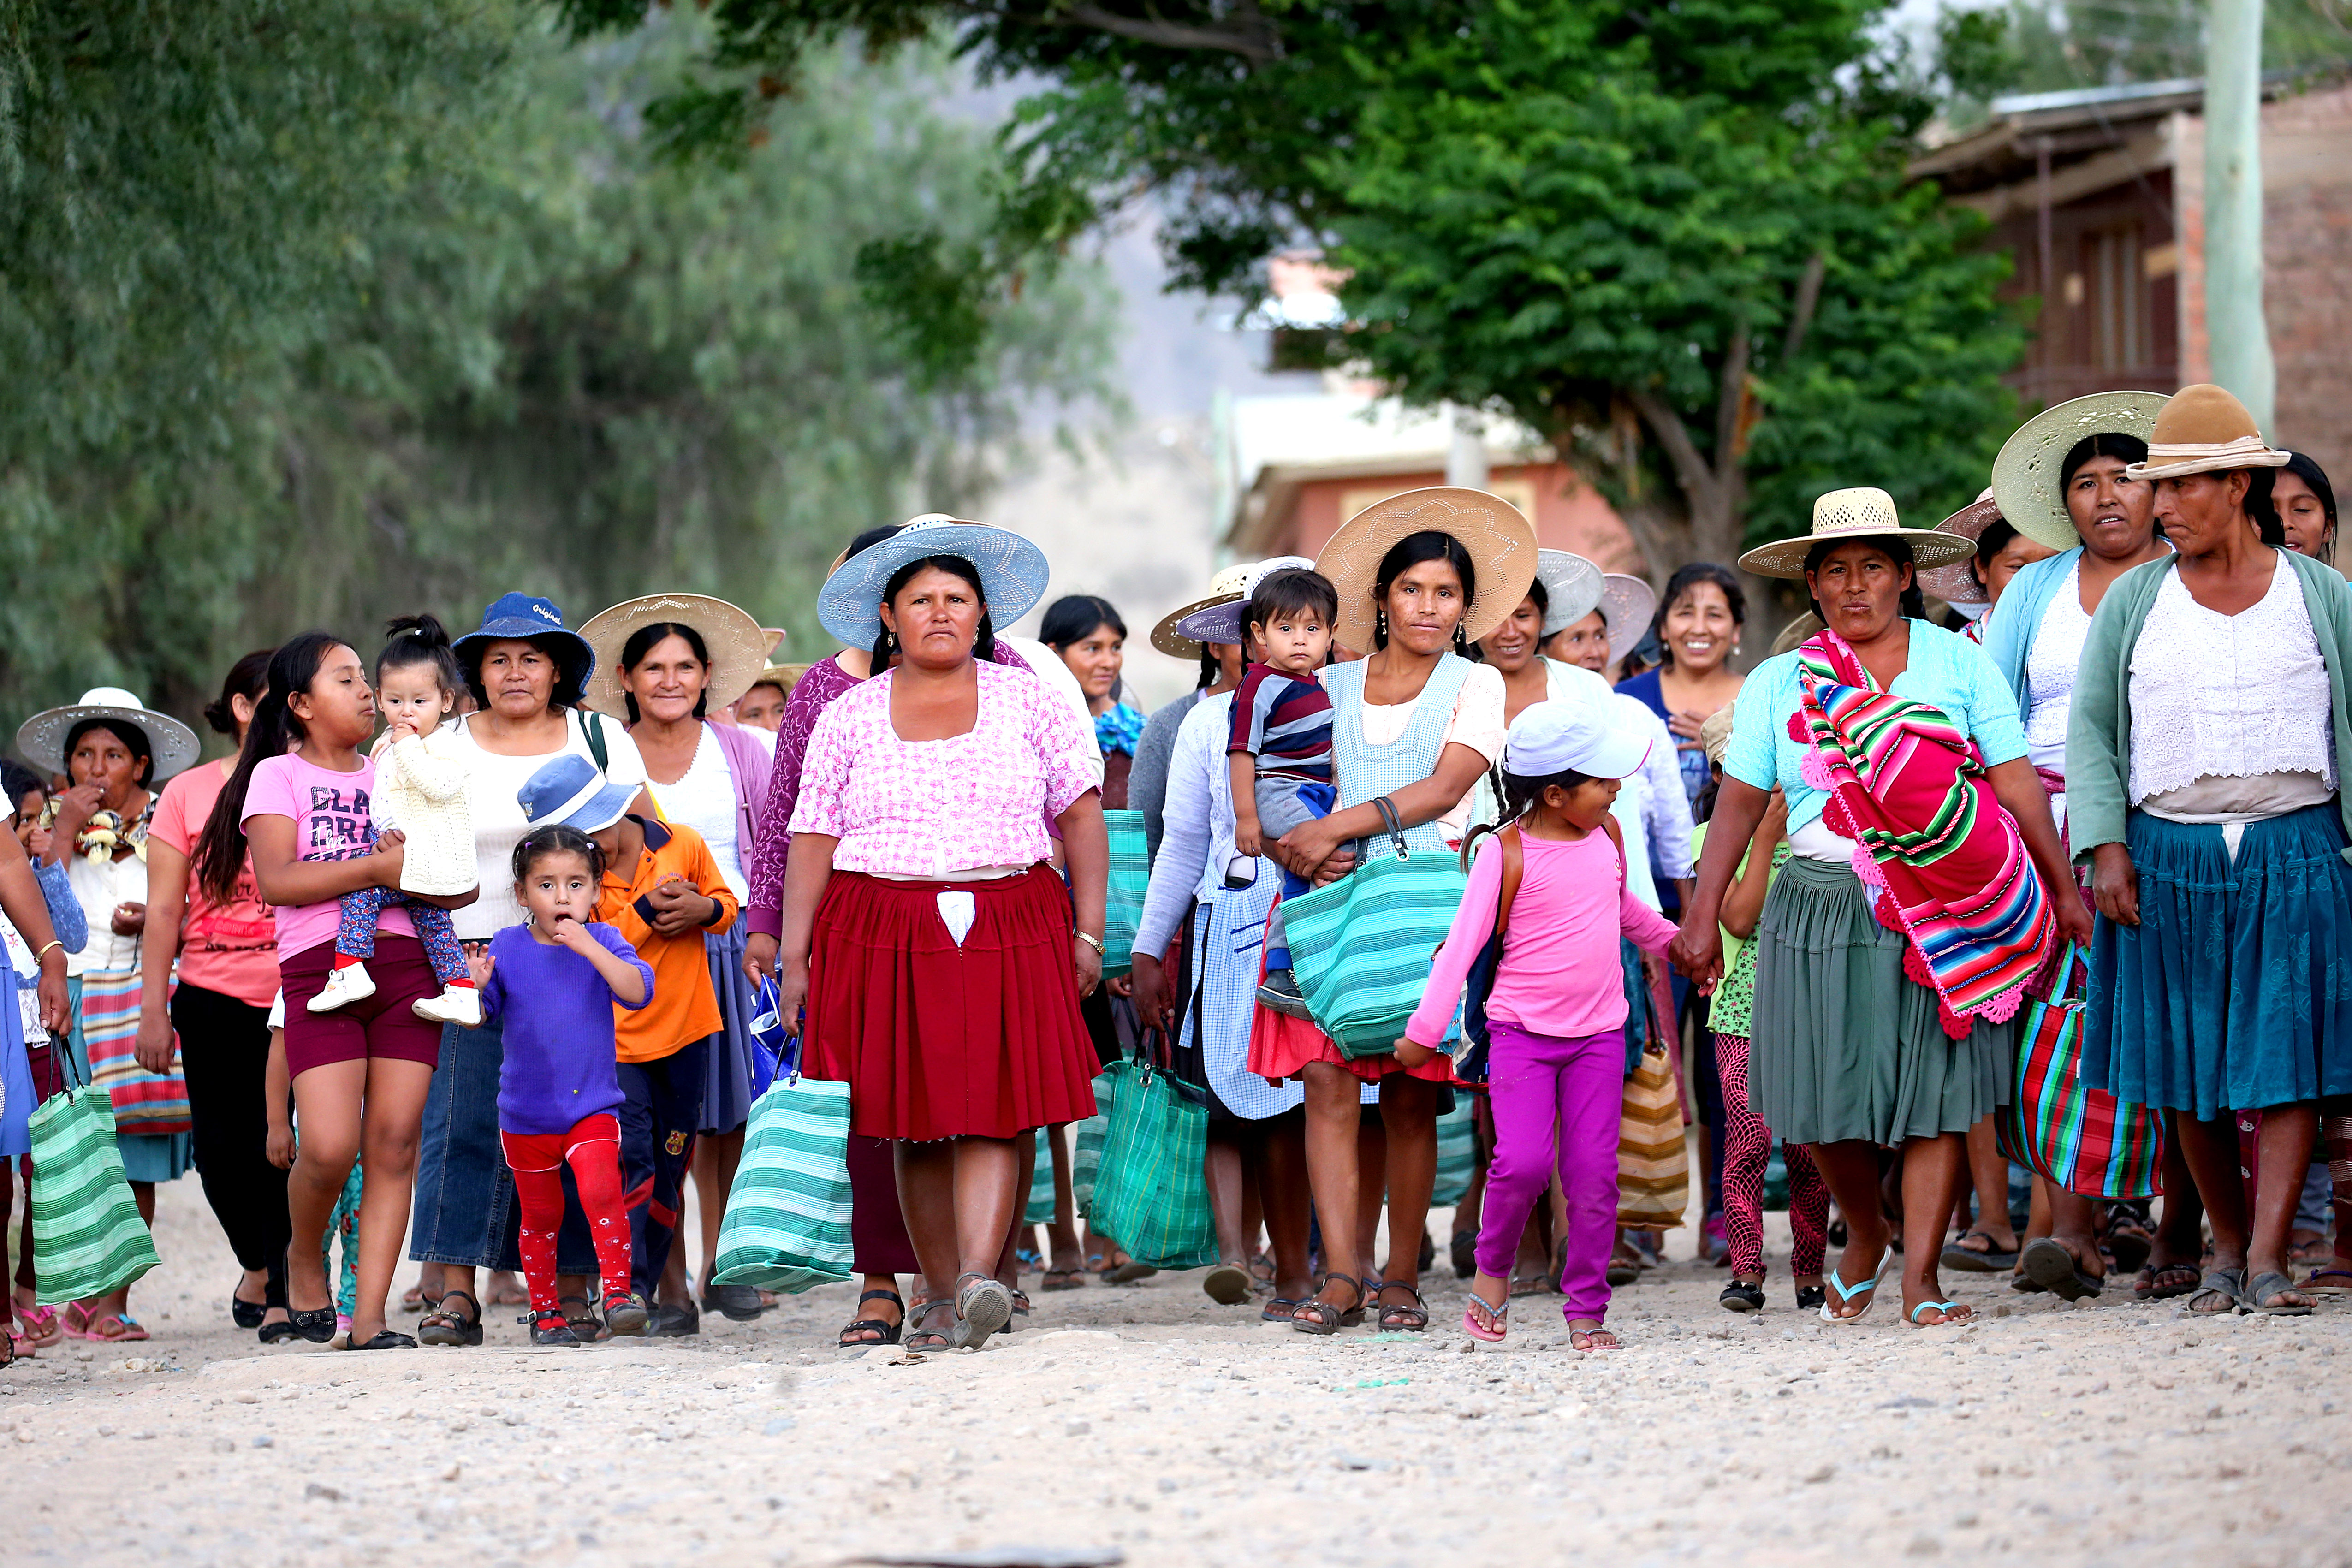 BOLIVIA: Increasing reduction of spacesimmune to state co-optation or repression